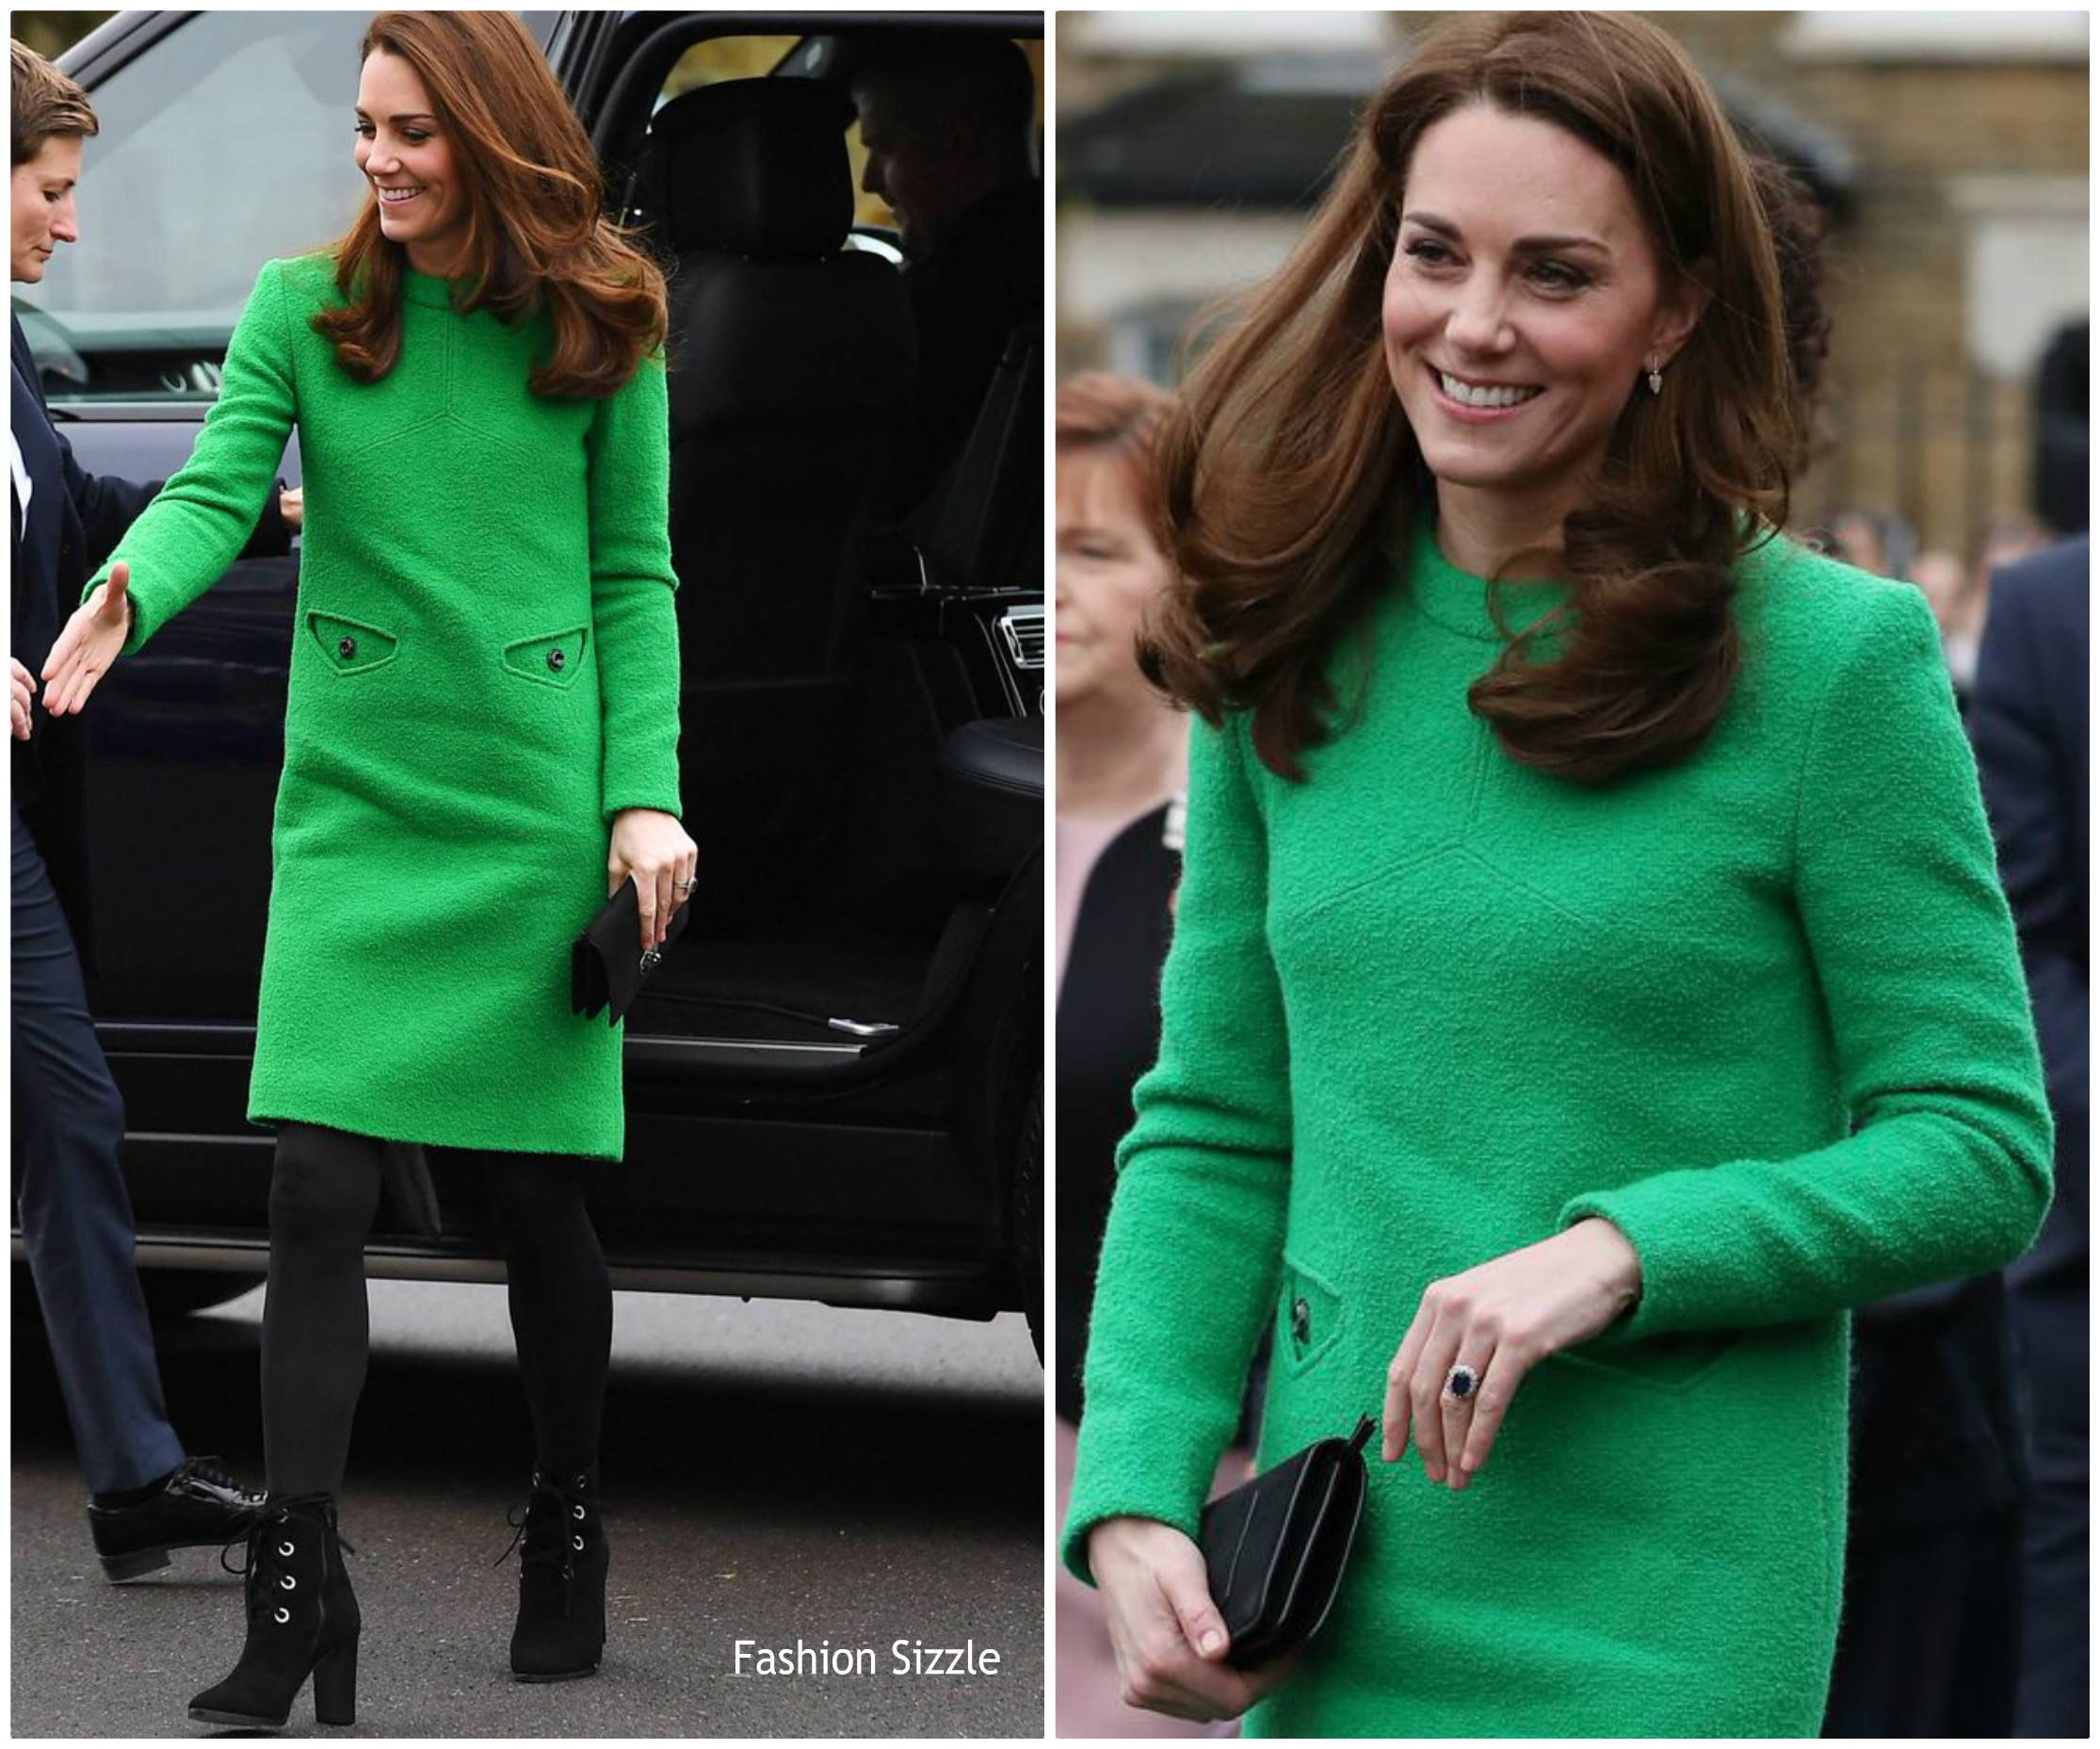 catherine-duchess-of-cambridge-in-eponine-london-lavender-primary-school-visit